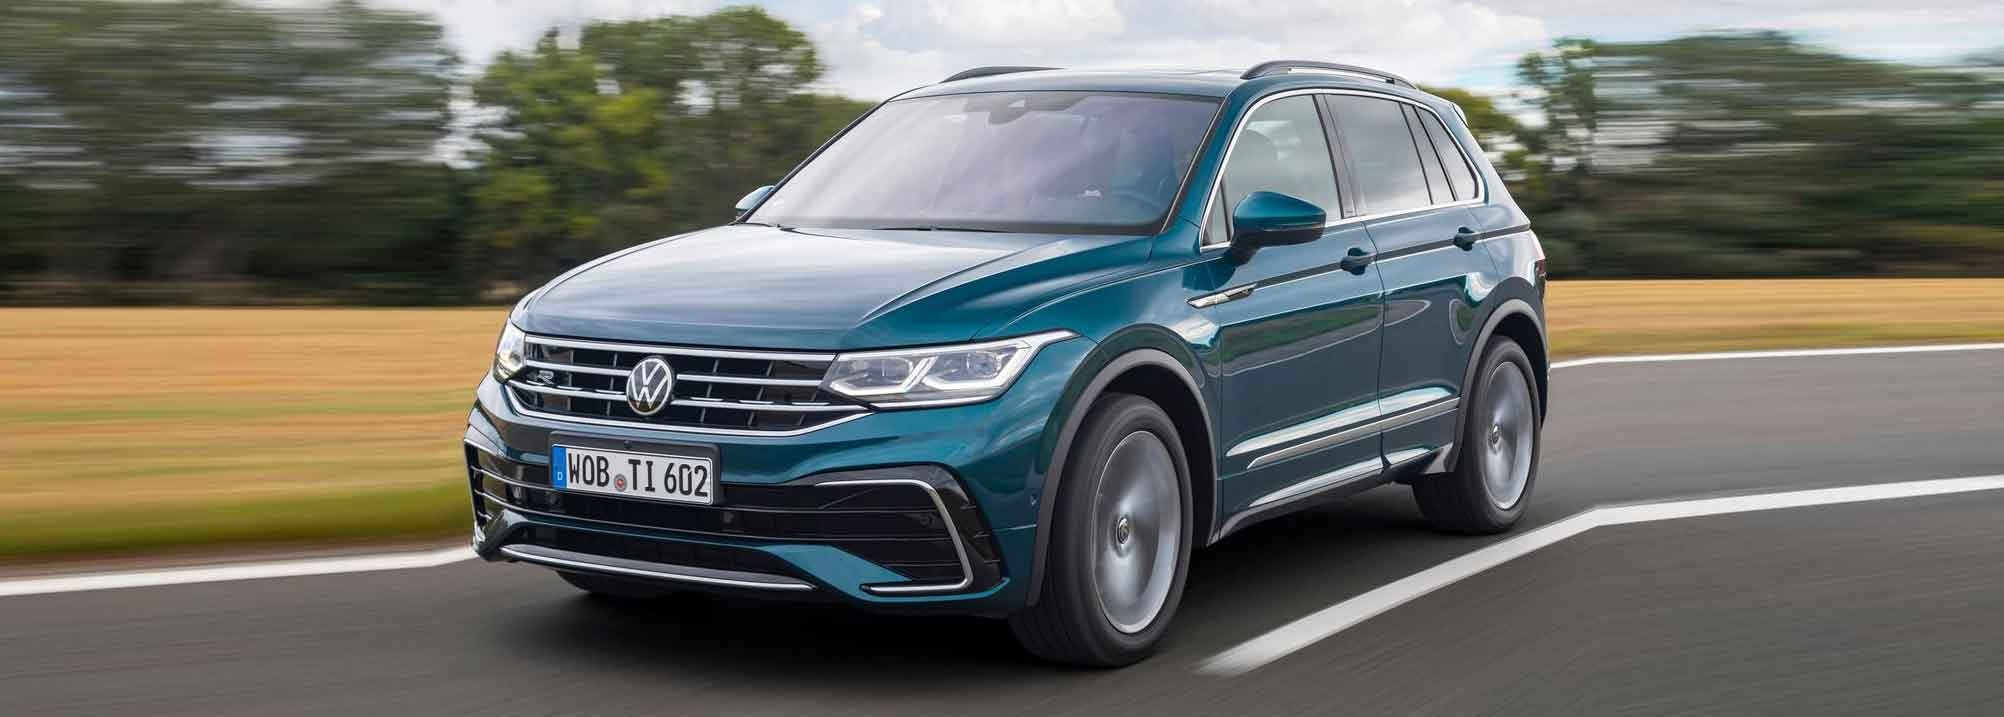 Pricing of soon to be launched VW Tiguan released